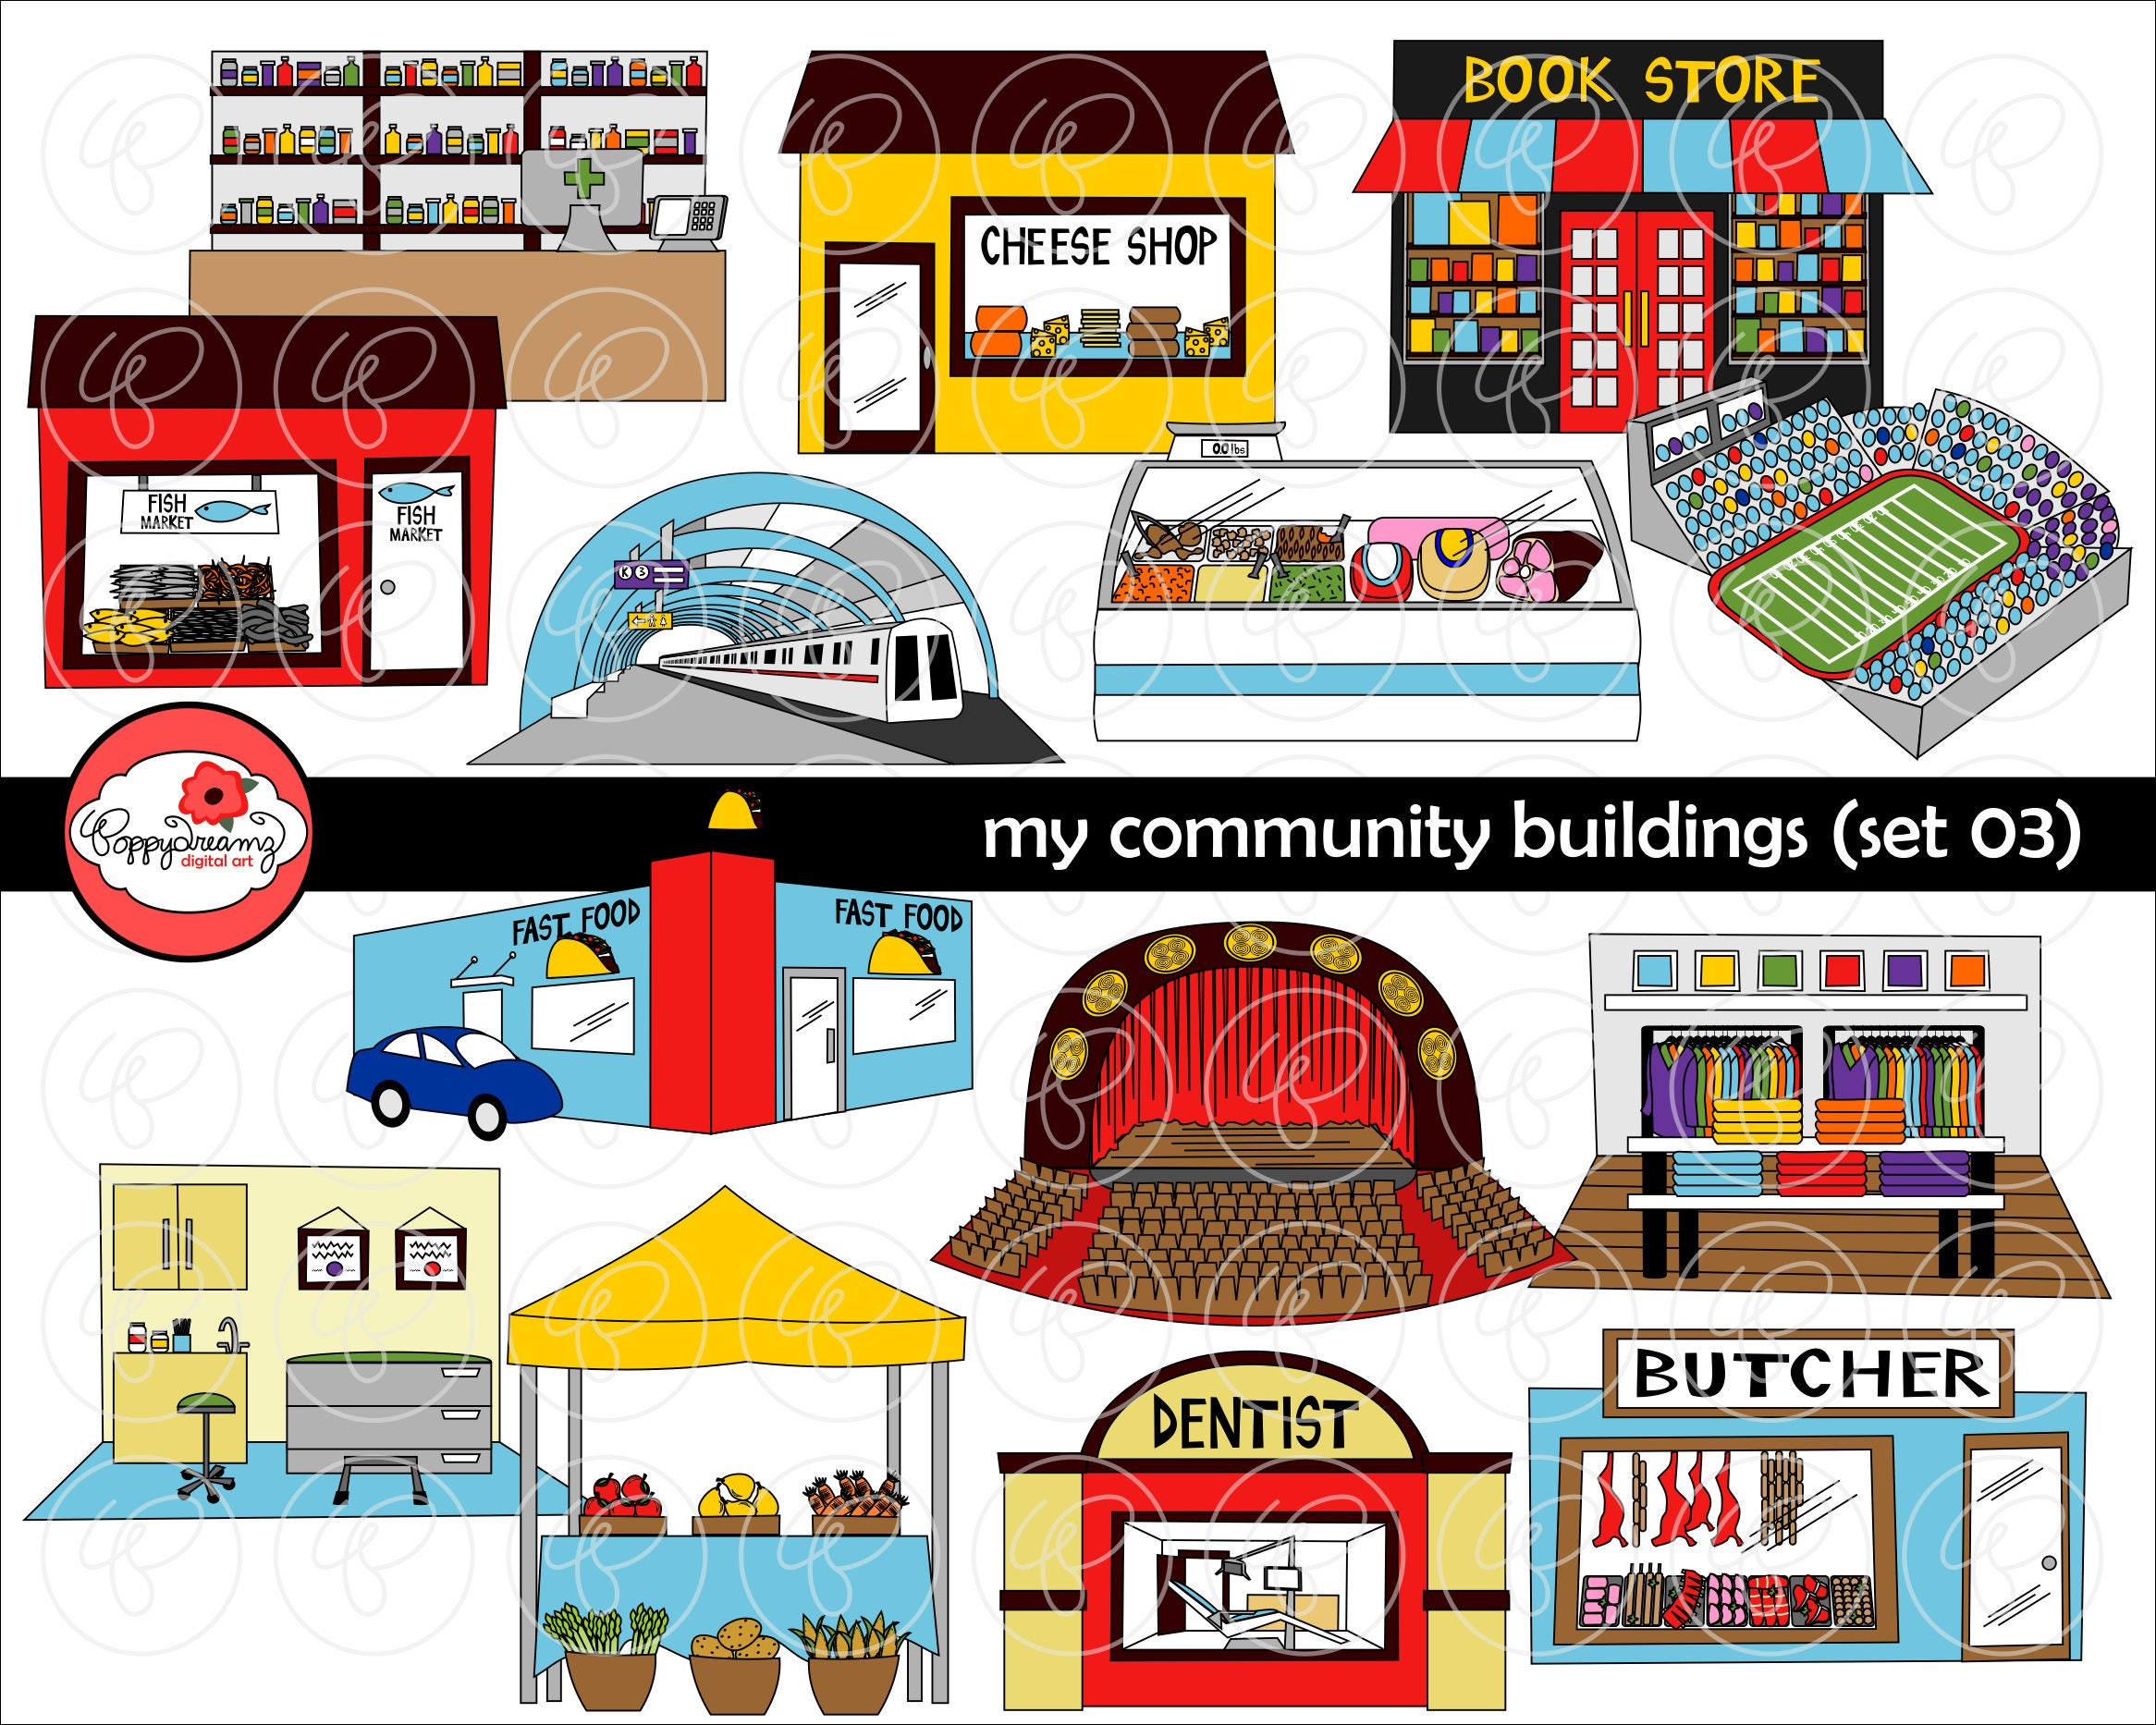 My Community Buildings Set 03 Clipart: 300 dpi transparent